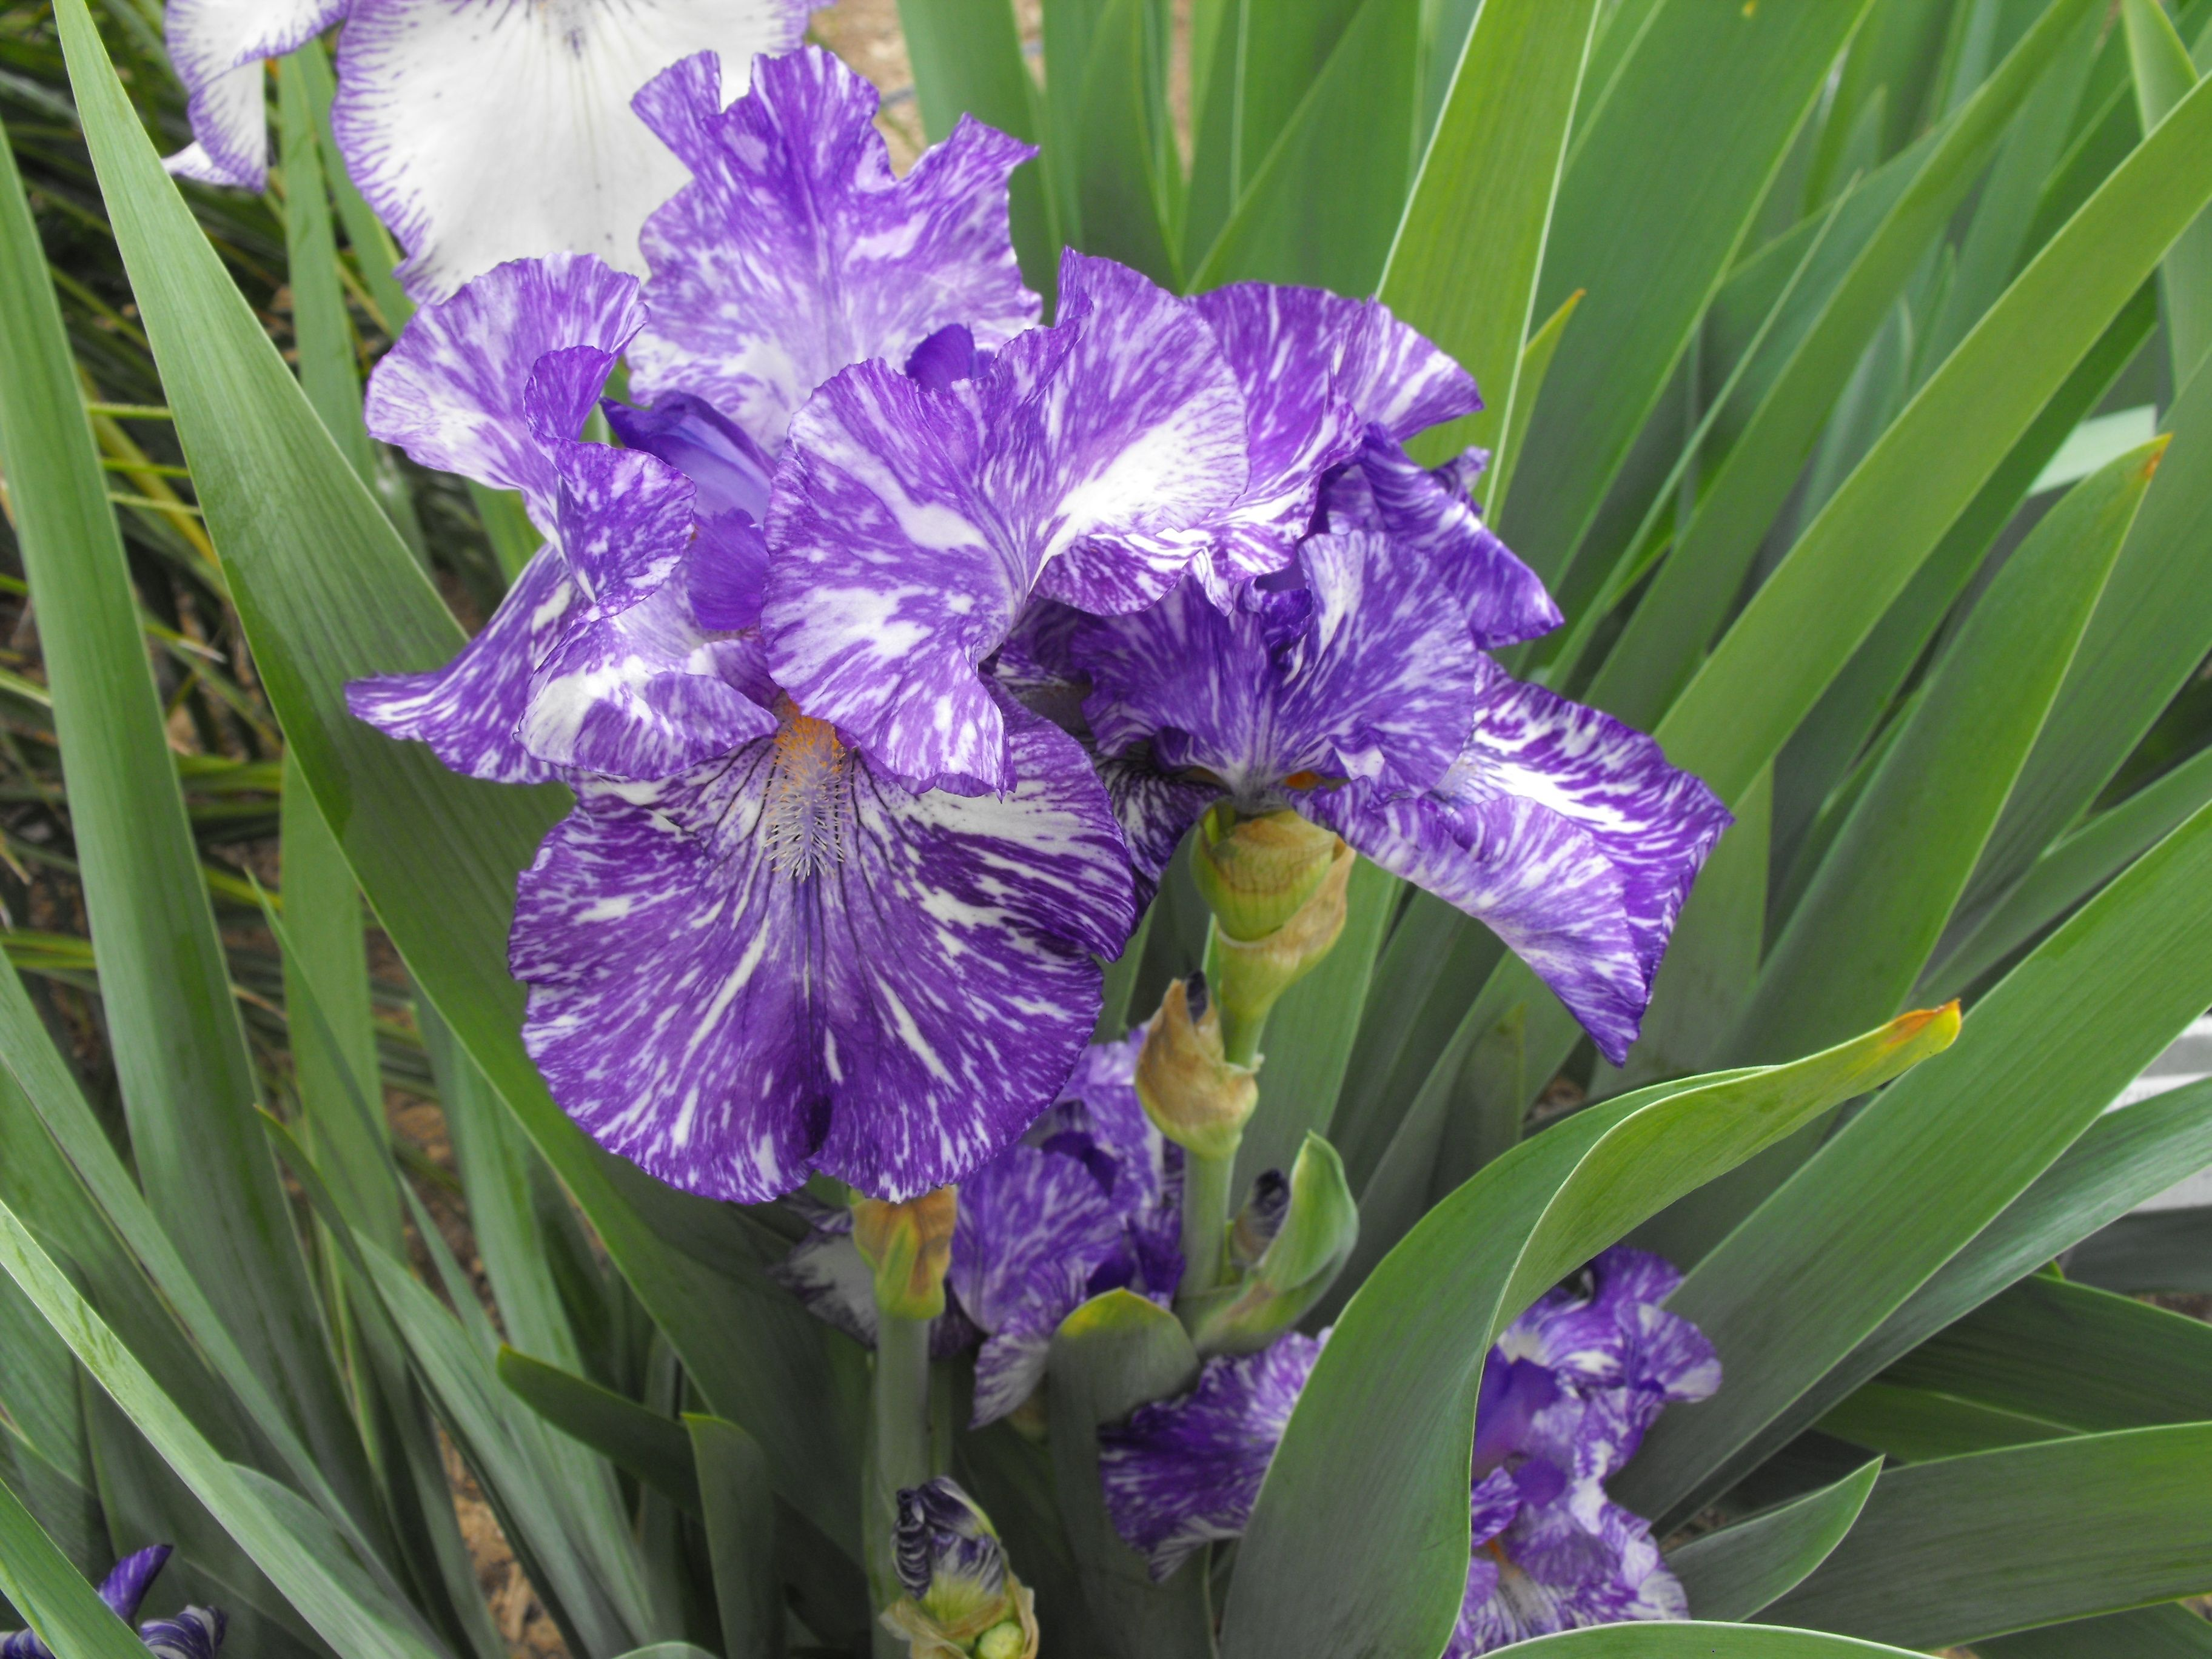 Purple And White Speckled Iris Flowers Plants Posy